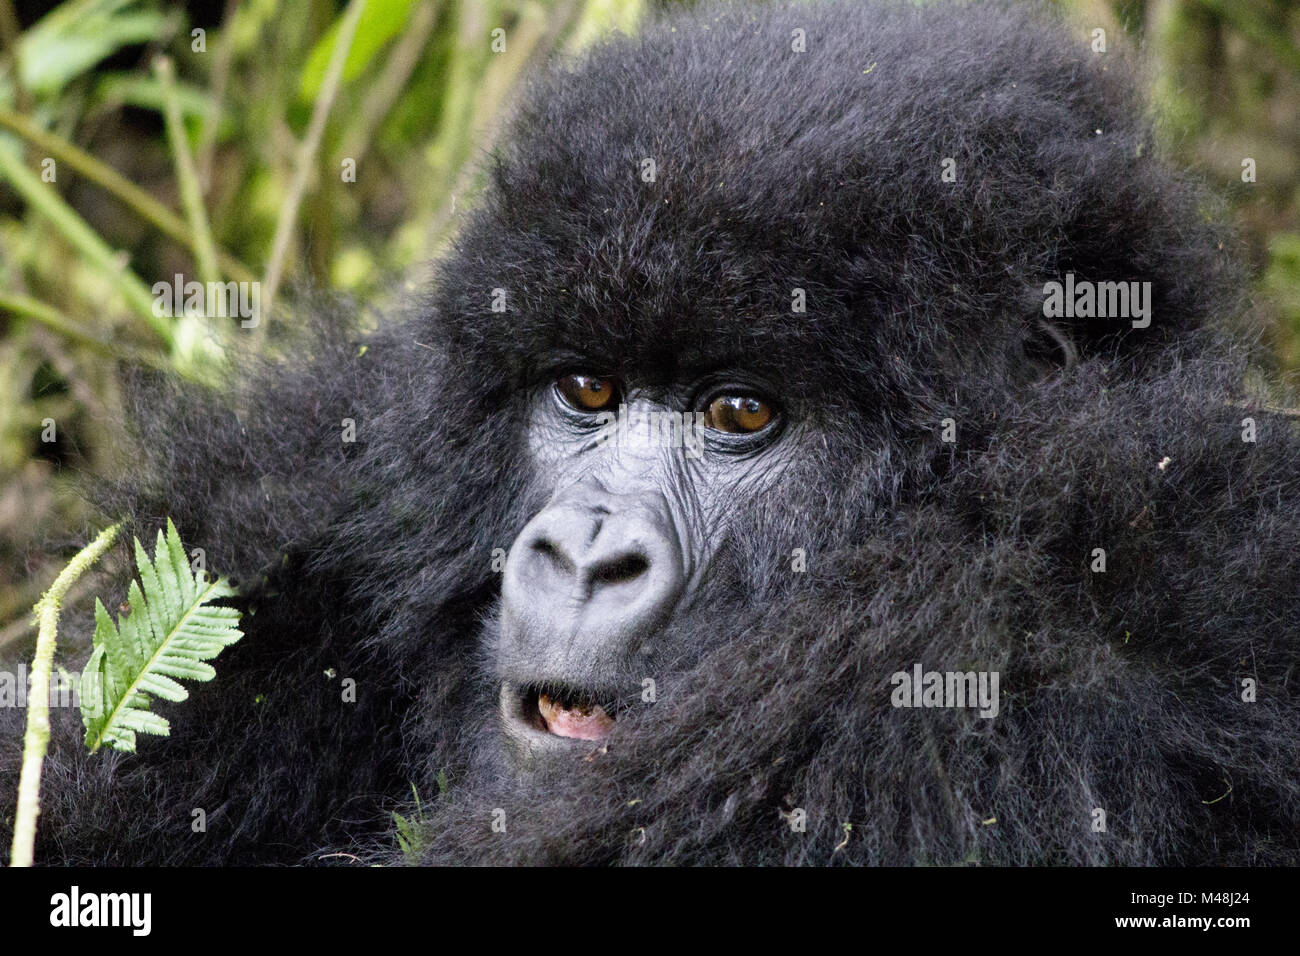 Young Gorilla in the Virunga National Park, Rwanda. - Stock Image